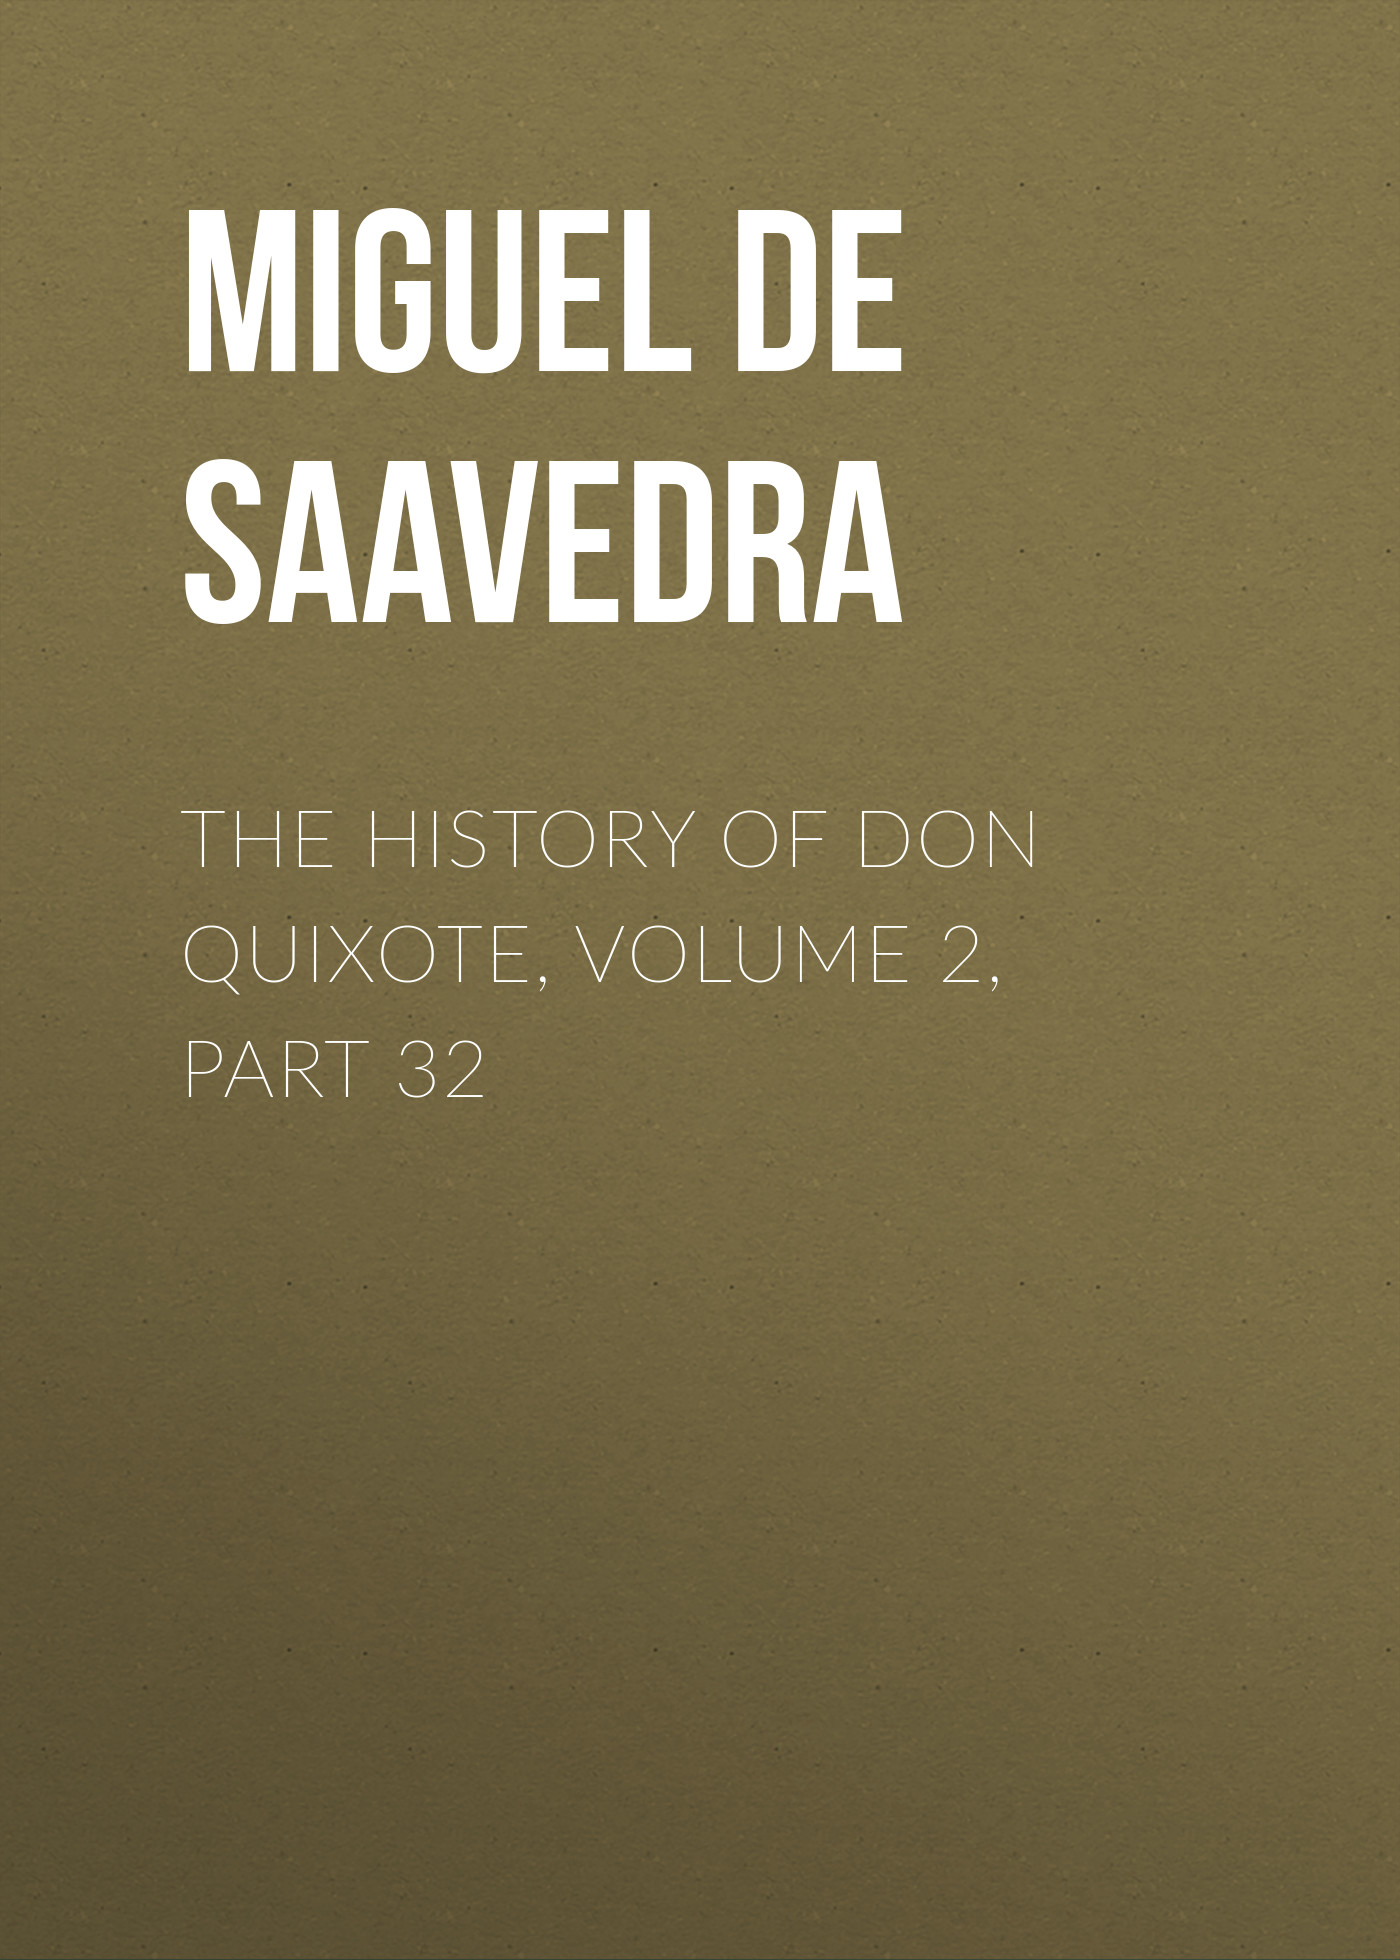 the history of don quixote volume 2 part 32